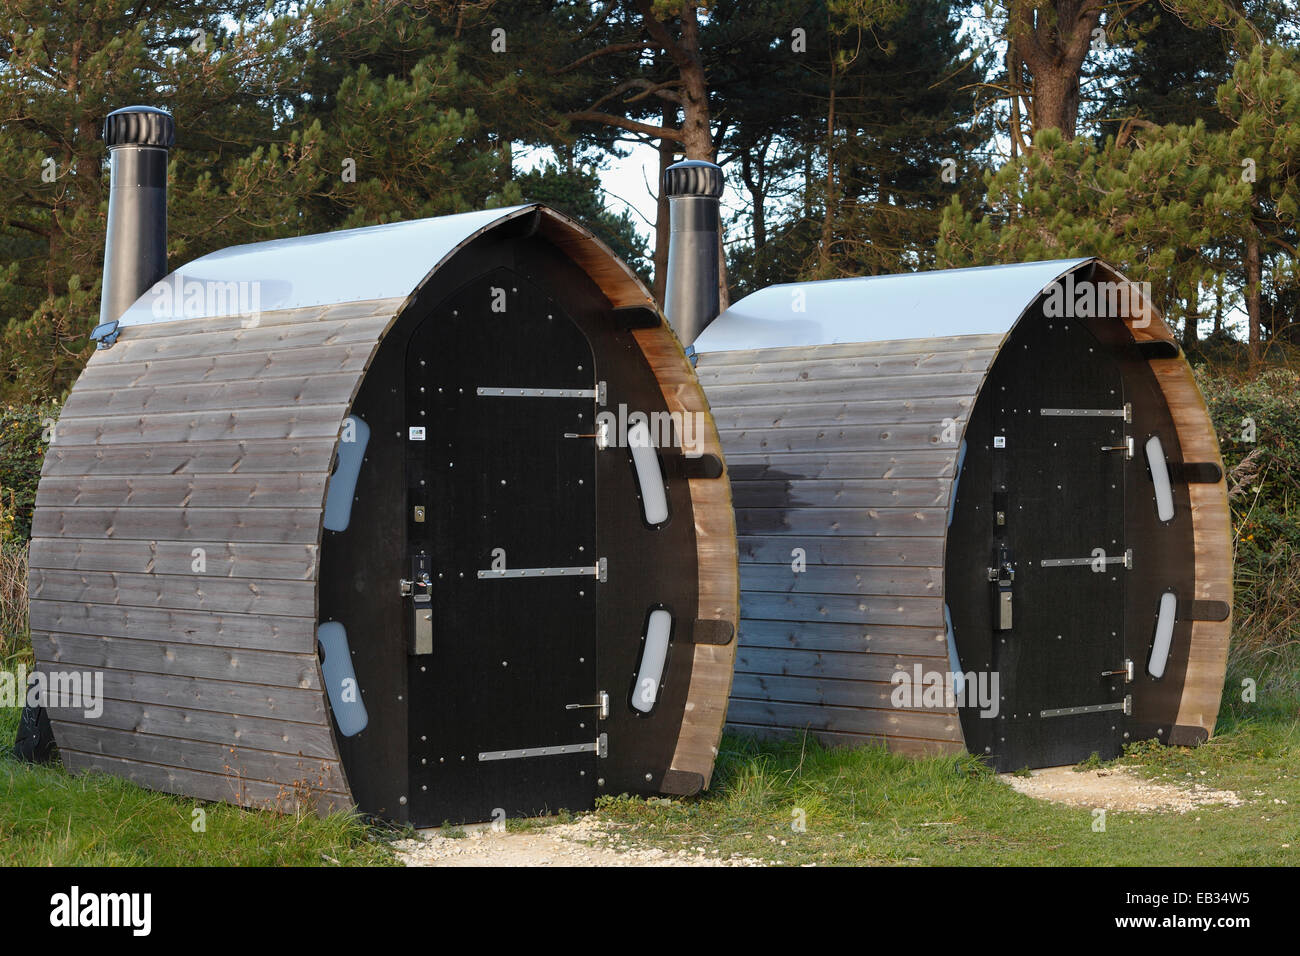 Unusual design for public toilets at Holme Dunes nature reserve visitors centre. - Stock Image